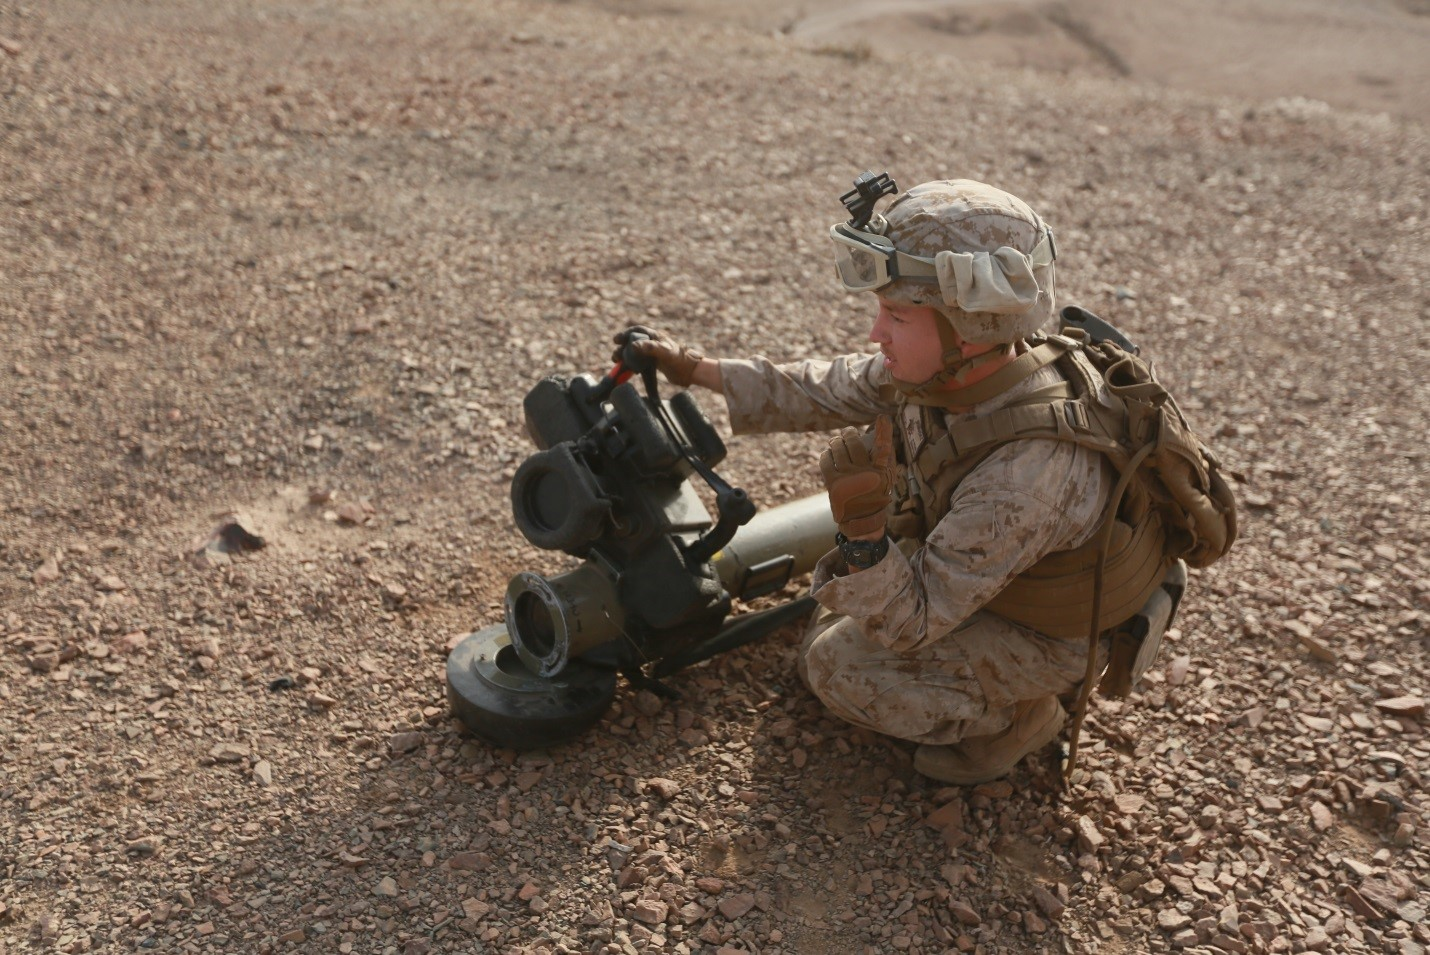 150728-M-ZZ999-069   ARTA BEACH, Djibouti (July 28, 2015) U.S. Marine Lance Cpl. Steven Benavidez prepares a Javelin shoulder-fired anti-tank missile system for use during sustainment training. Benavidez is a scout with Combined Anti-Armor Team 1, Weapons Company, Battalion Landing Team 3rd Battalion, 1st Marine Regiment, 15th Marine Expeditionary Unit. Elements of the 15th MEU are ashore in Djibouti for sustainment training to maintain and enhance the skills they developed during their pre-deployment training period. The 15th MEU is currently deployed in support of maritime security operations and theater security cooperation efforts in the U.S. 5th and 6th Fleet areas of operation. (U.S. Marine Corps photo by Gunnery Sgt. Eddy Arce/Released)